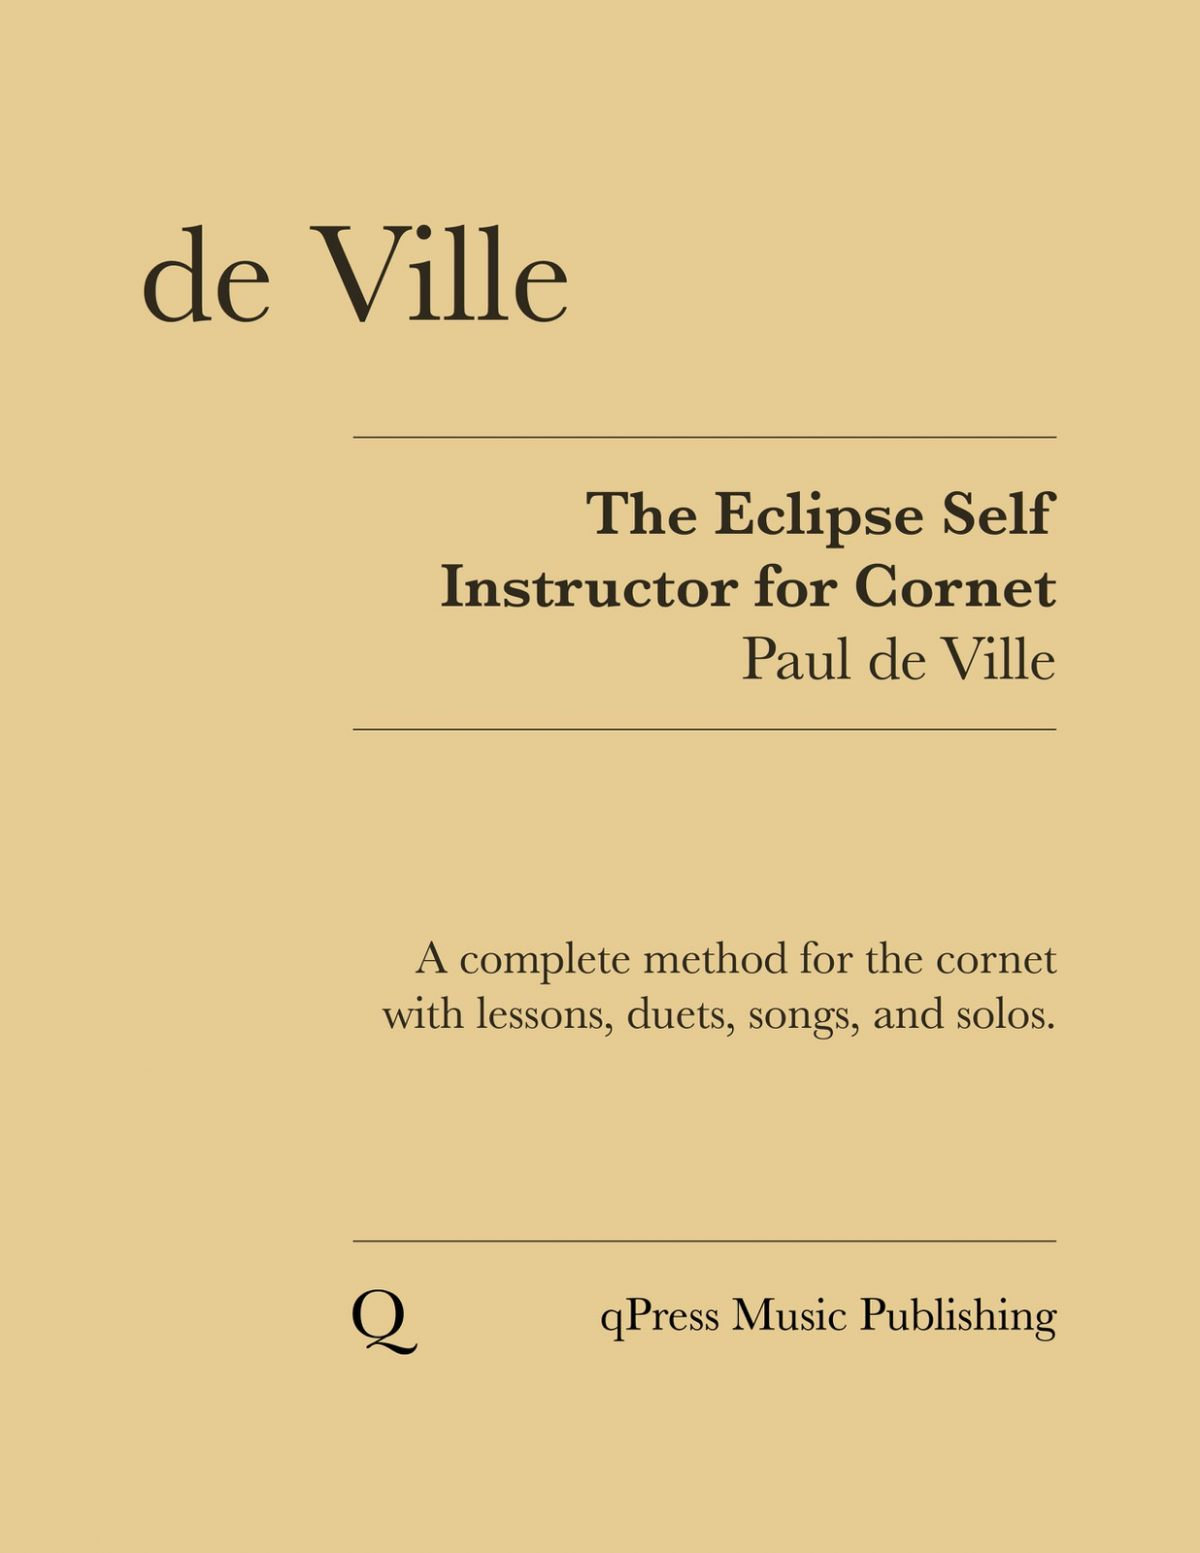 De Ville, Paul, The Eclipse Self Instructor for Cornet-p01